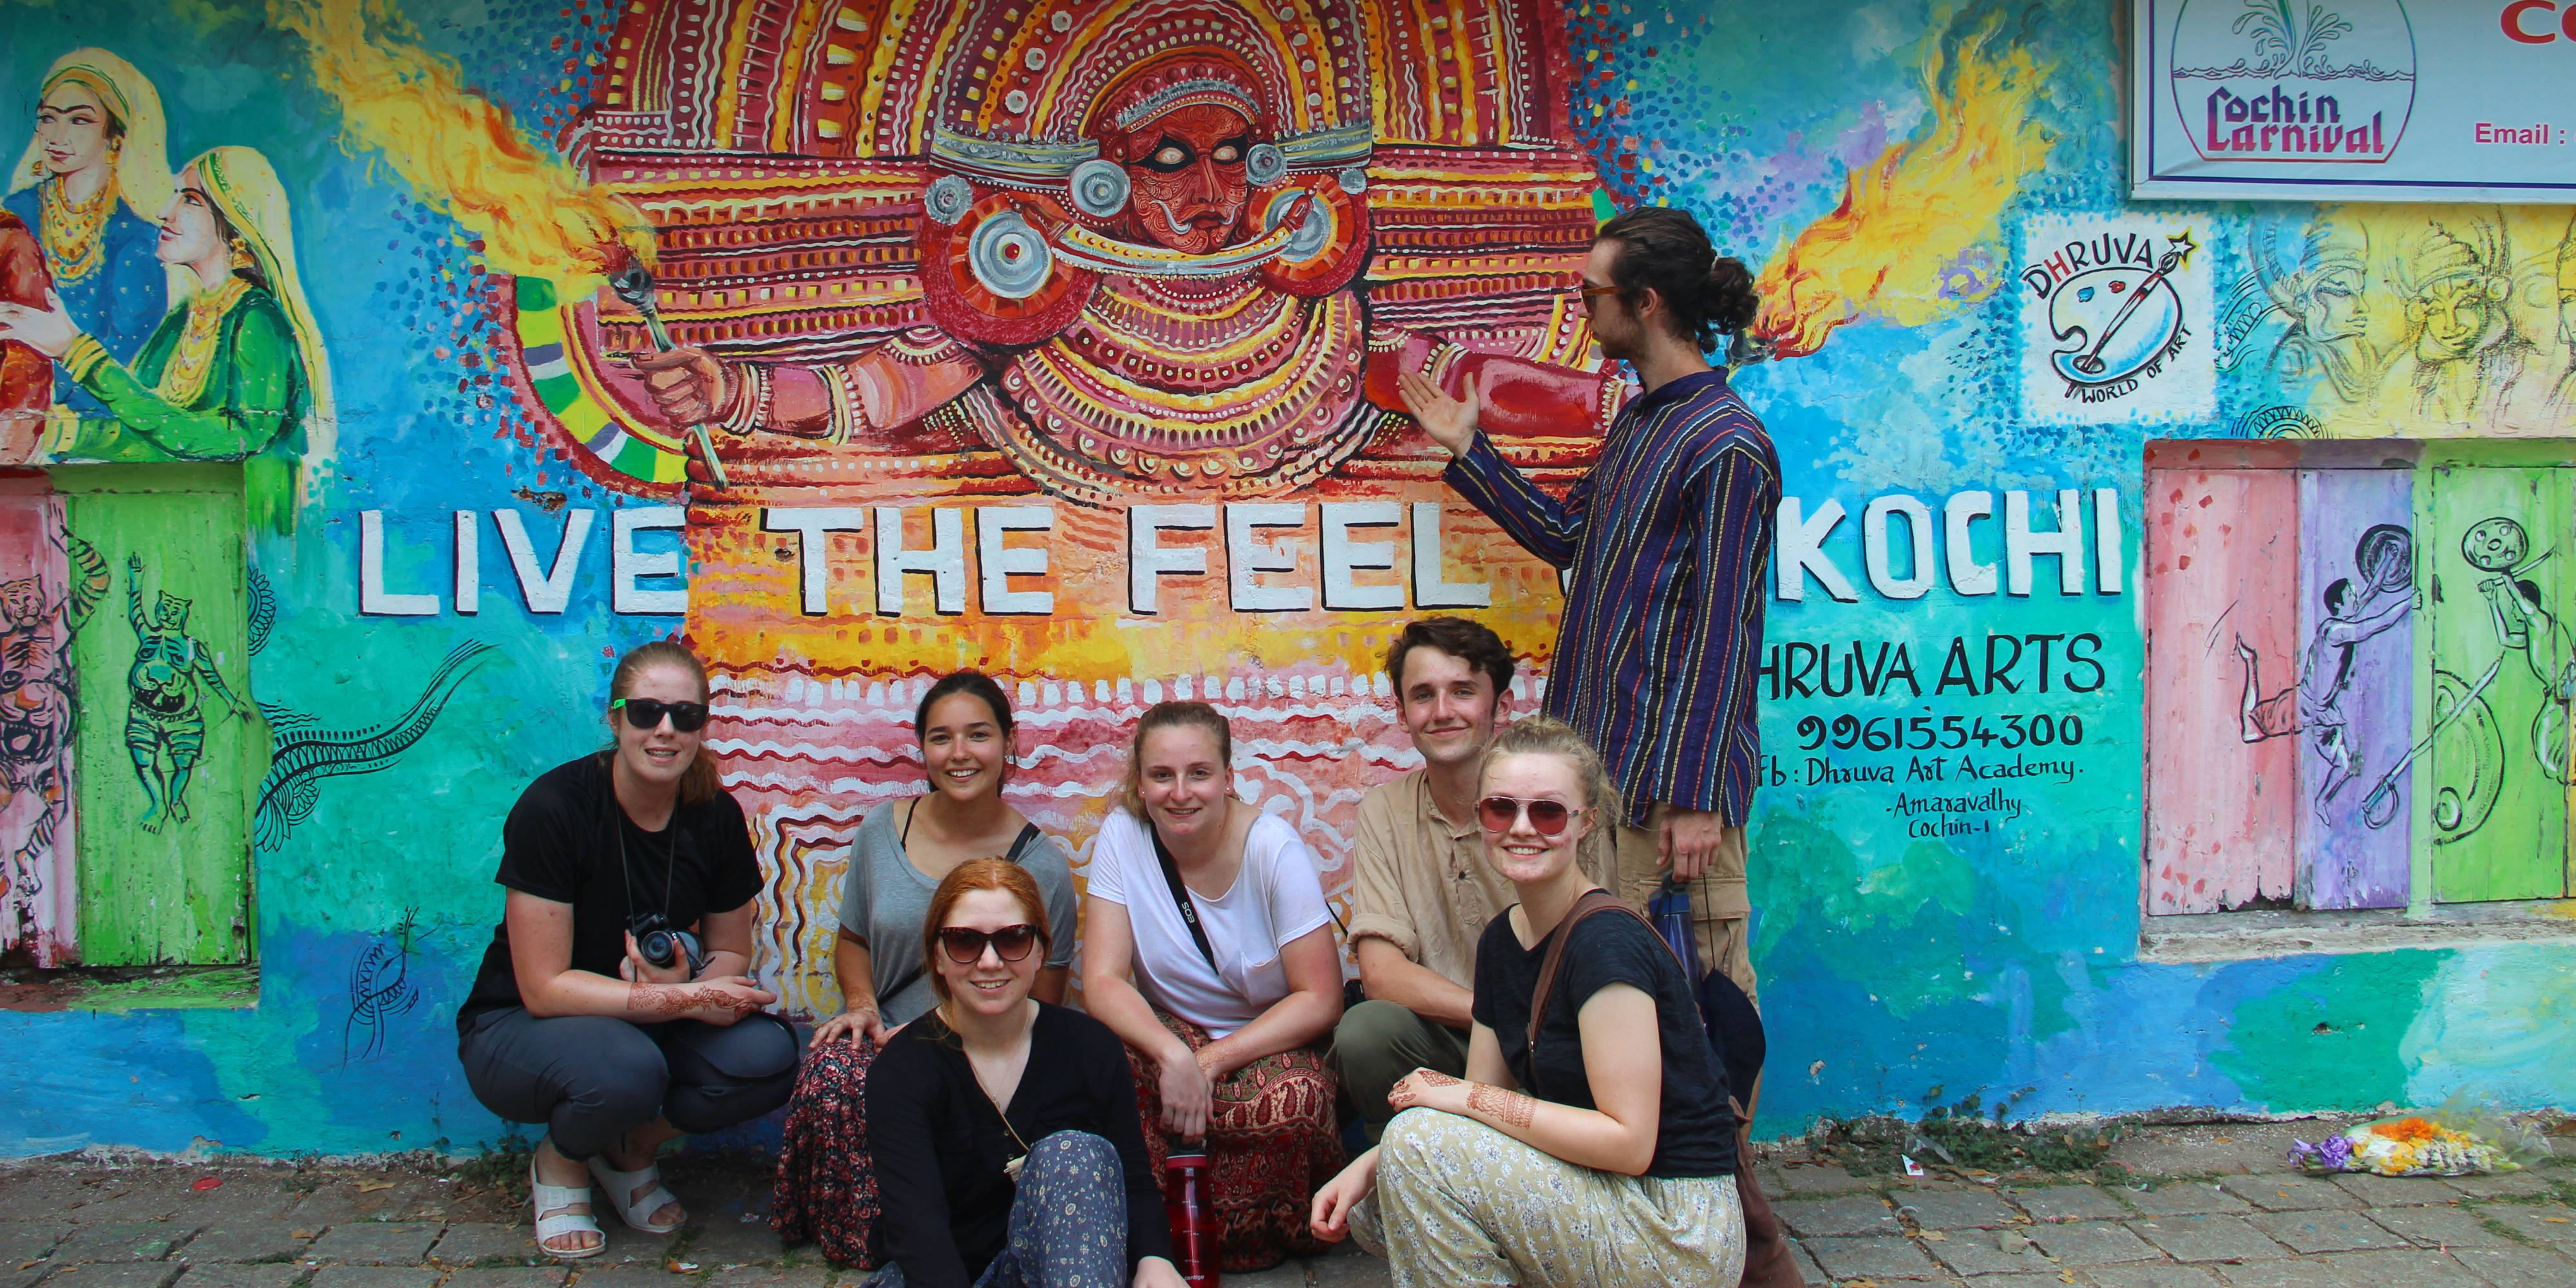 GVI participants spend time in the city of Kochi during their free time. When volunteering there will be opportunities for travel in India.